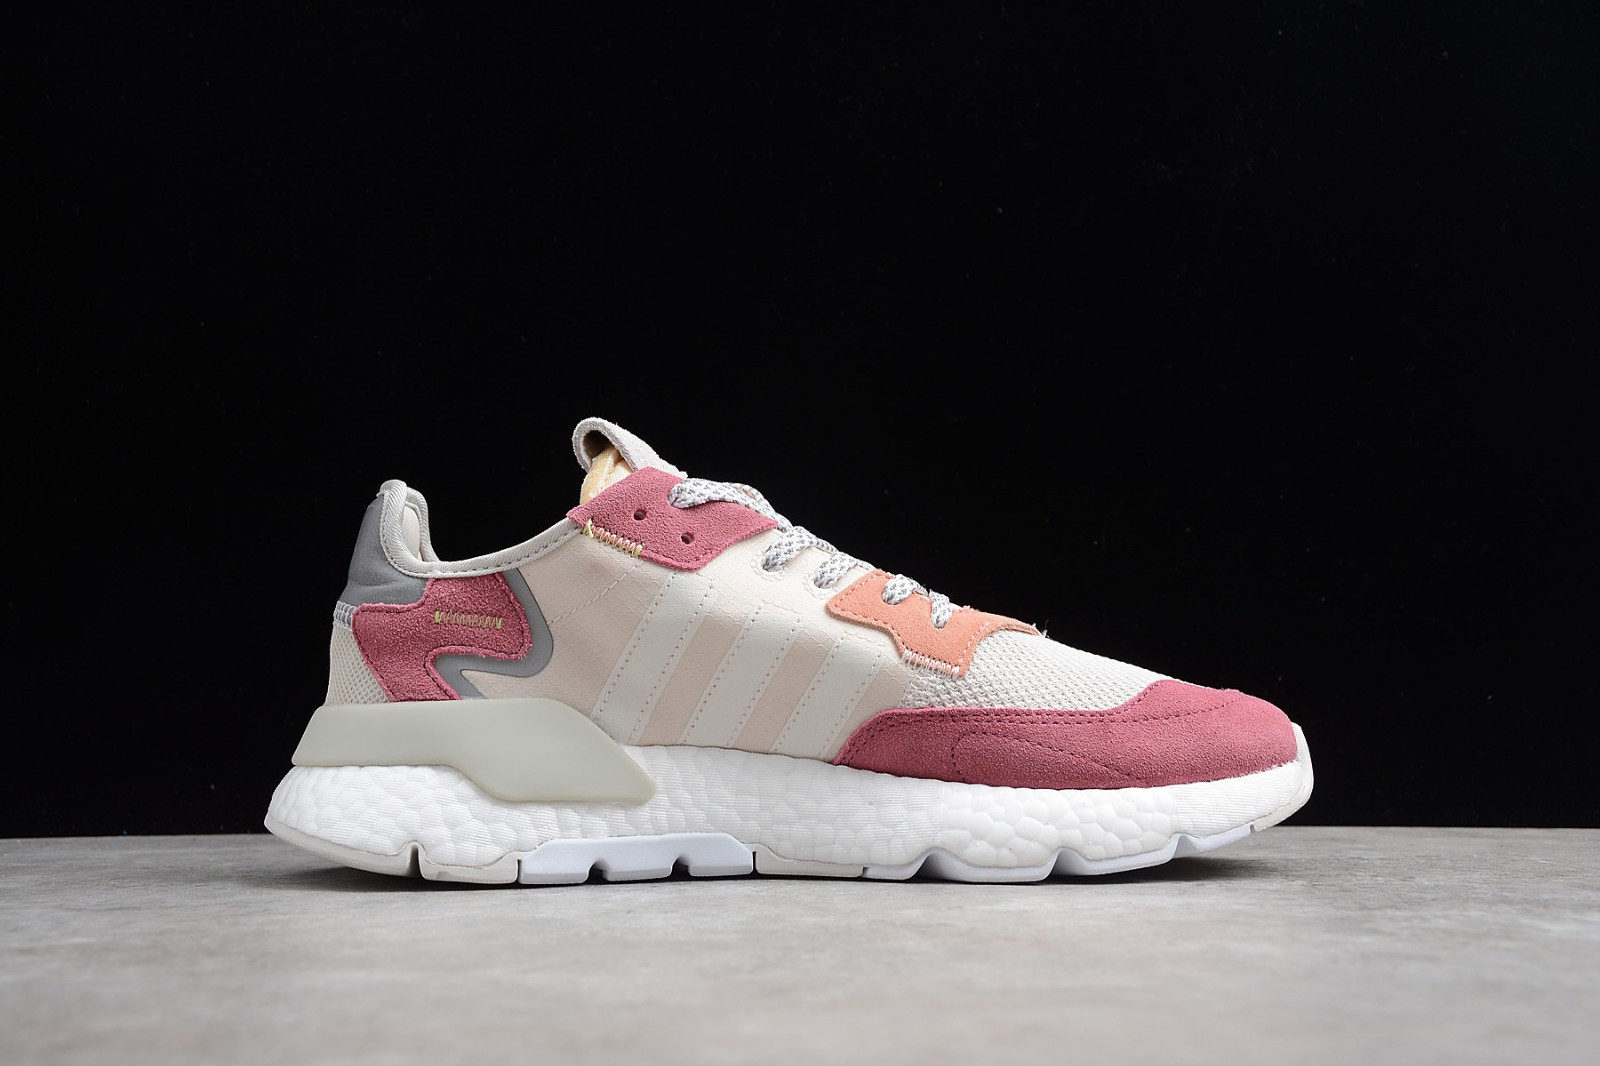 sale usa online new arrive exquisite style Adidas Nite Jogger 2019 Boost 3M Grey Light Pink Red White DA8666